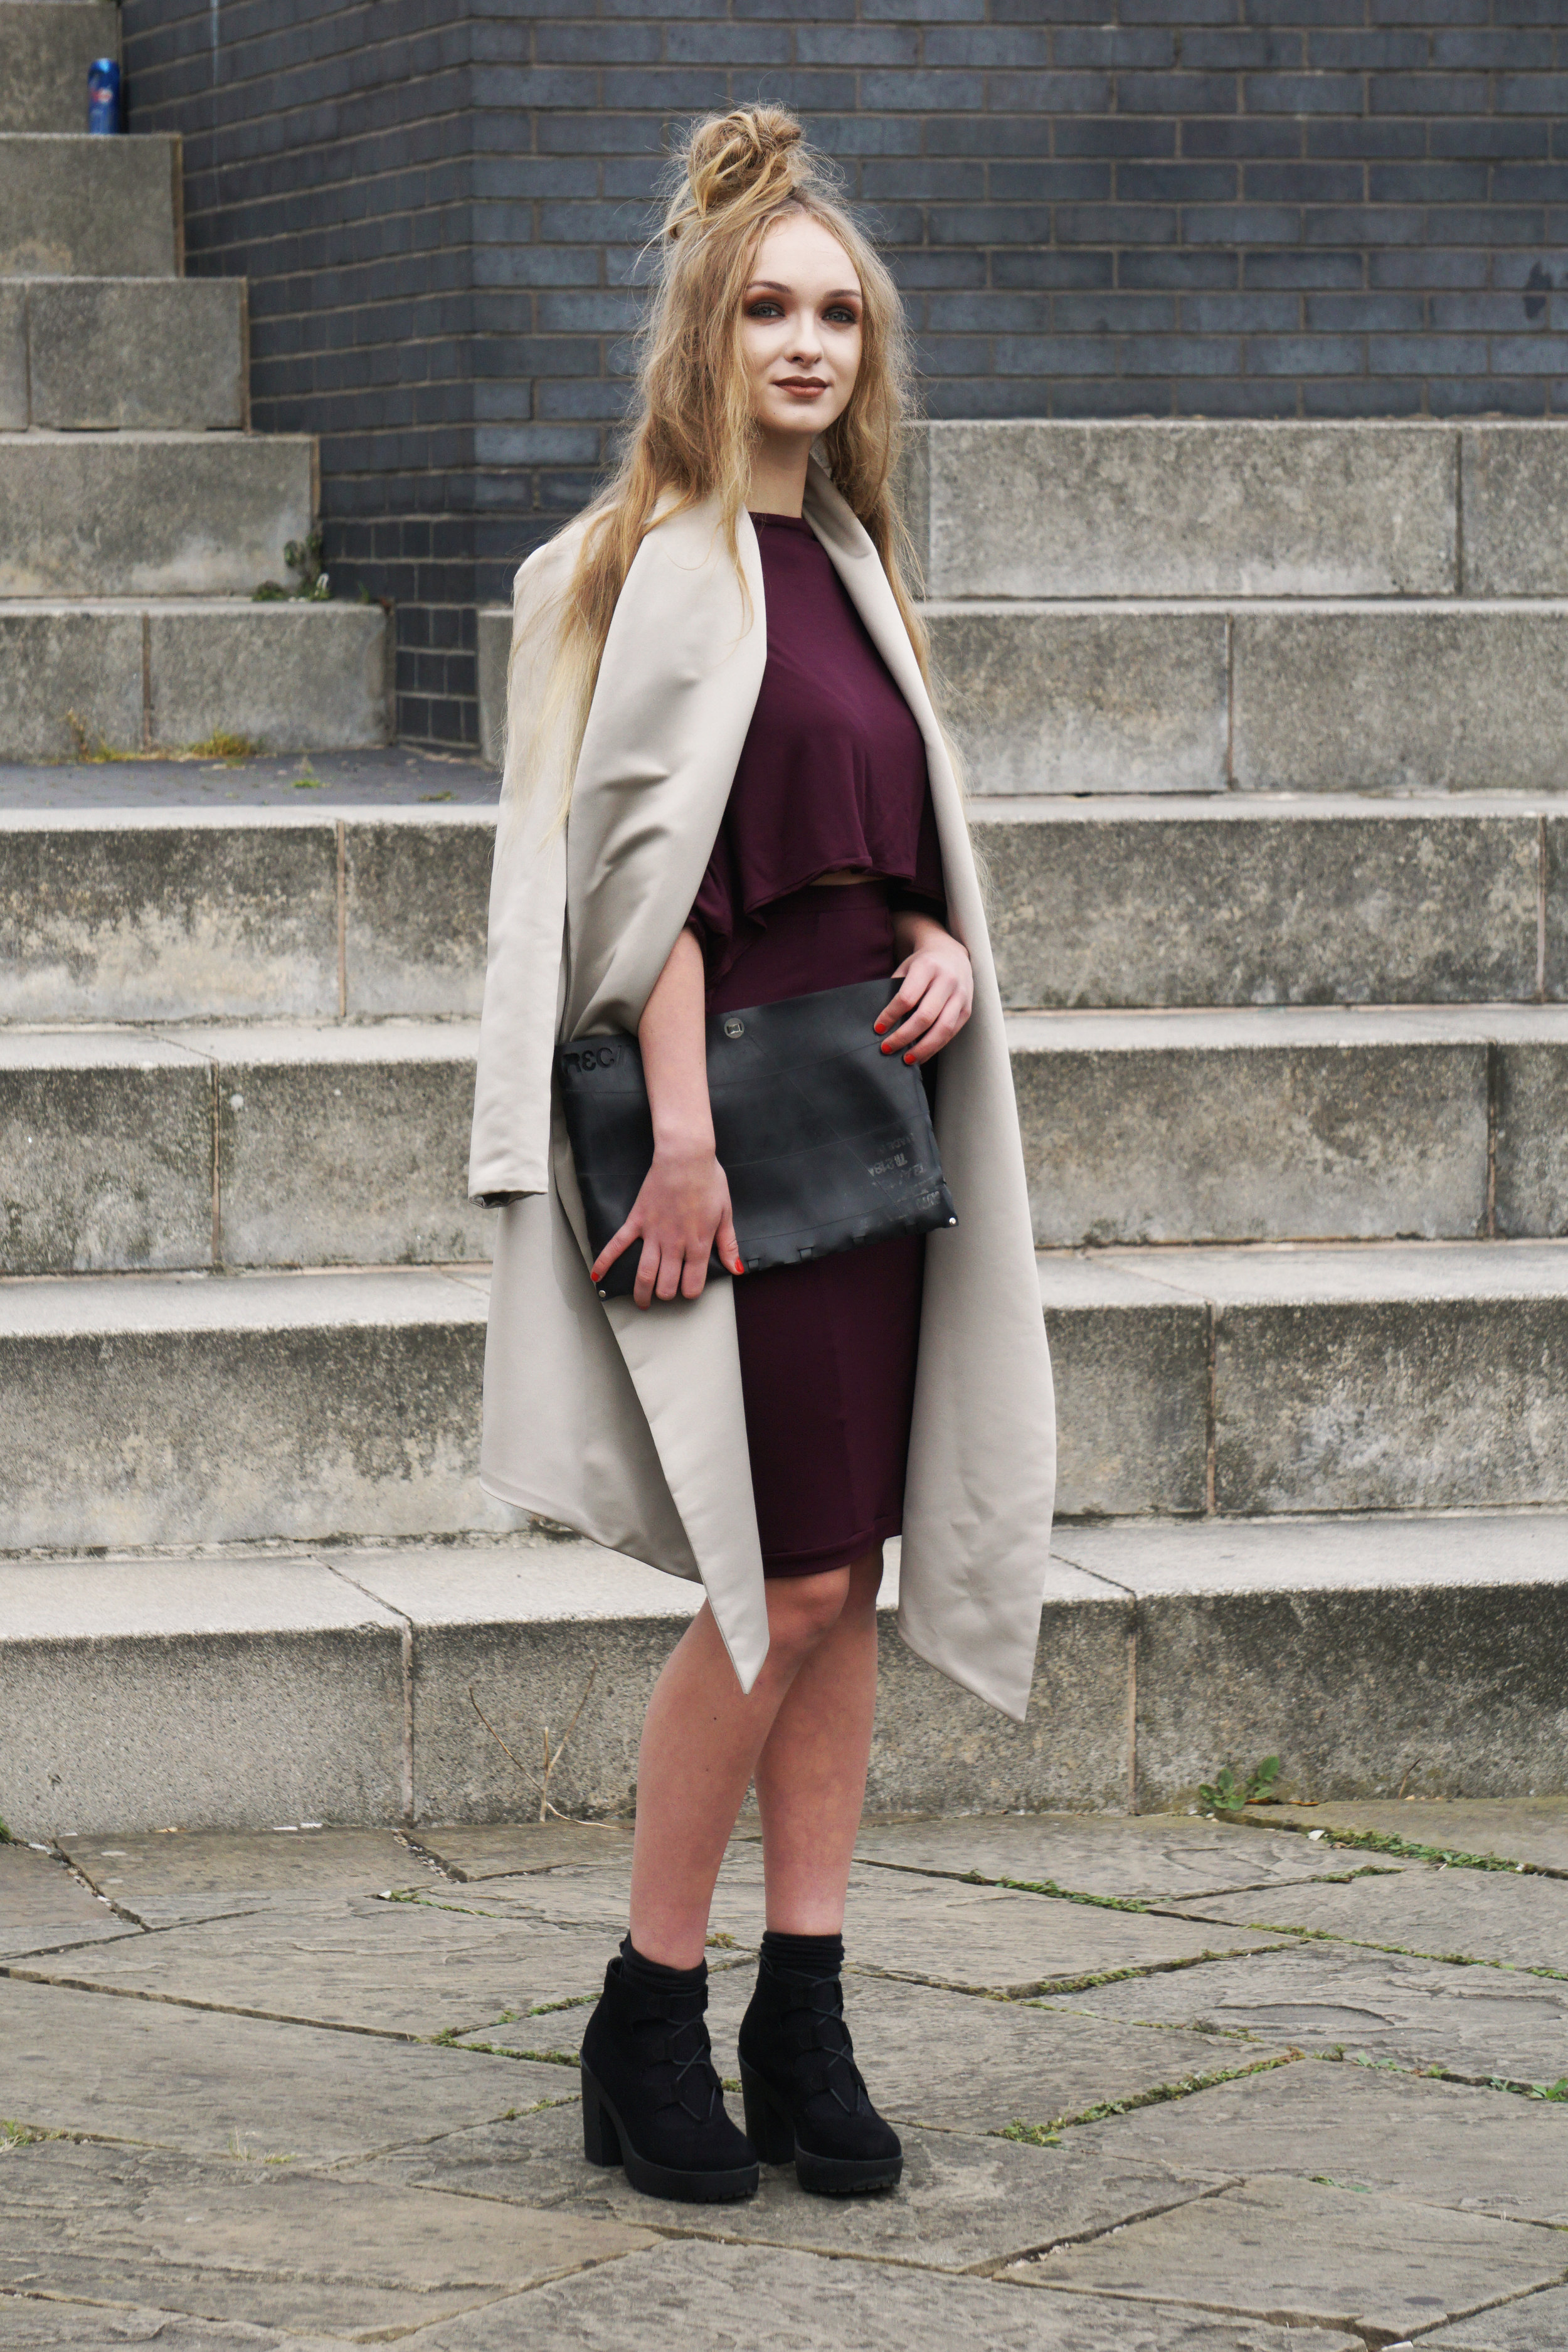 zaramia-ava-zaramiaava-leeds-fashion-designer-ethical-sustainable-taupe-jacket-versatile-plum-drape-mika-crop-top-yoko-skirt-leeds-dock-grunge-5